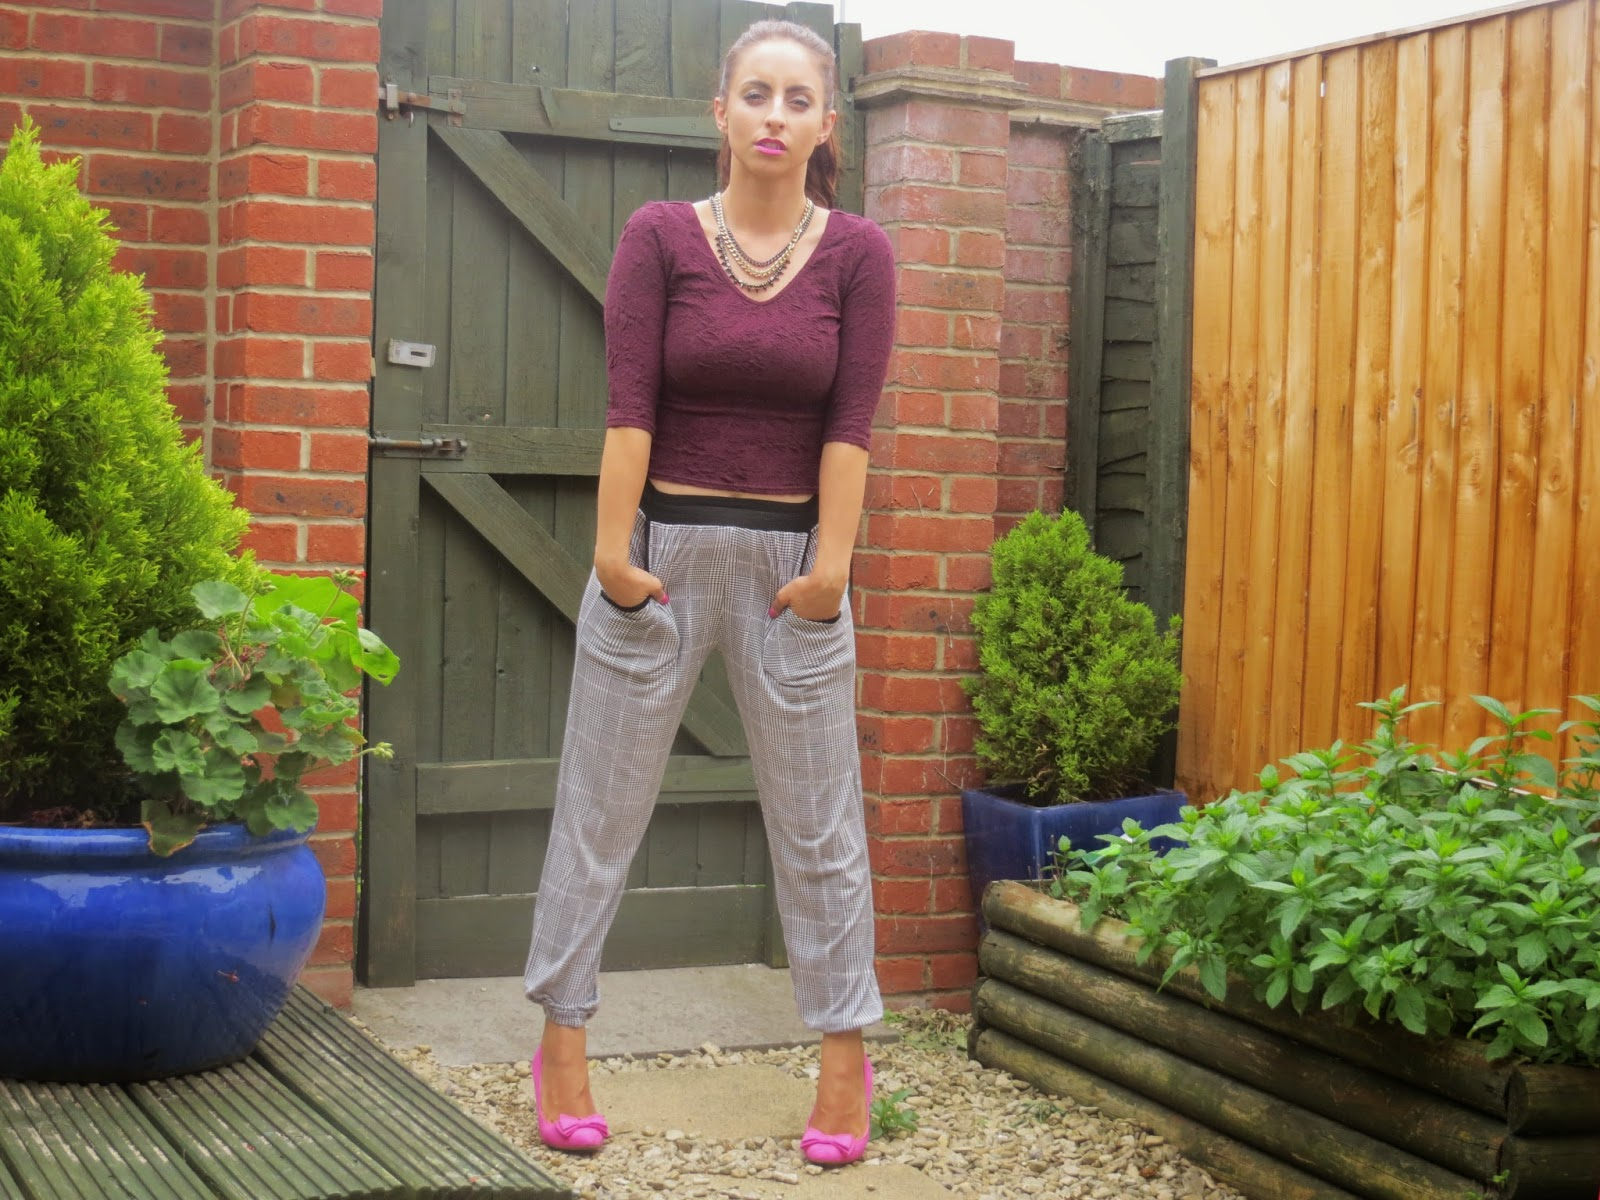 Fashion, summer inspiration, Topshop, OOTD, Boohoo, Missguided, River Island, New Look, Pretty, Pink shoes, Monochrome, outfit inspiration